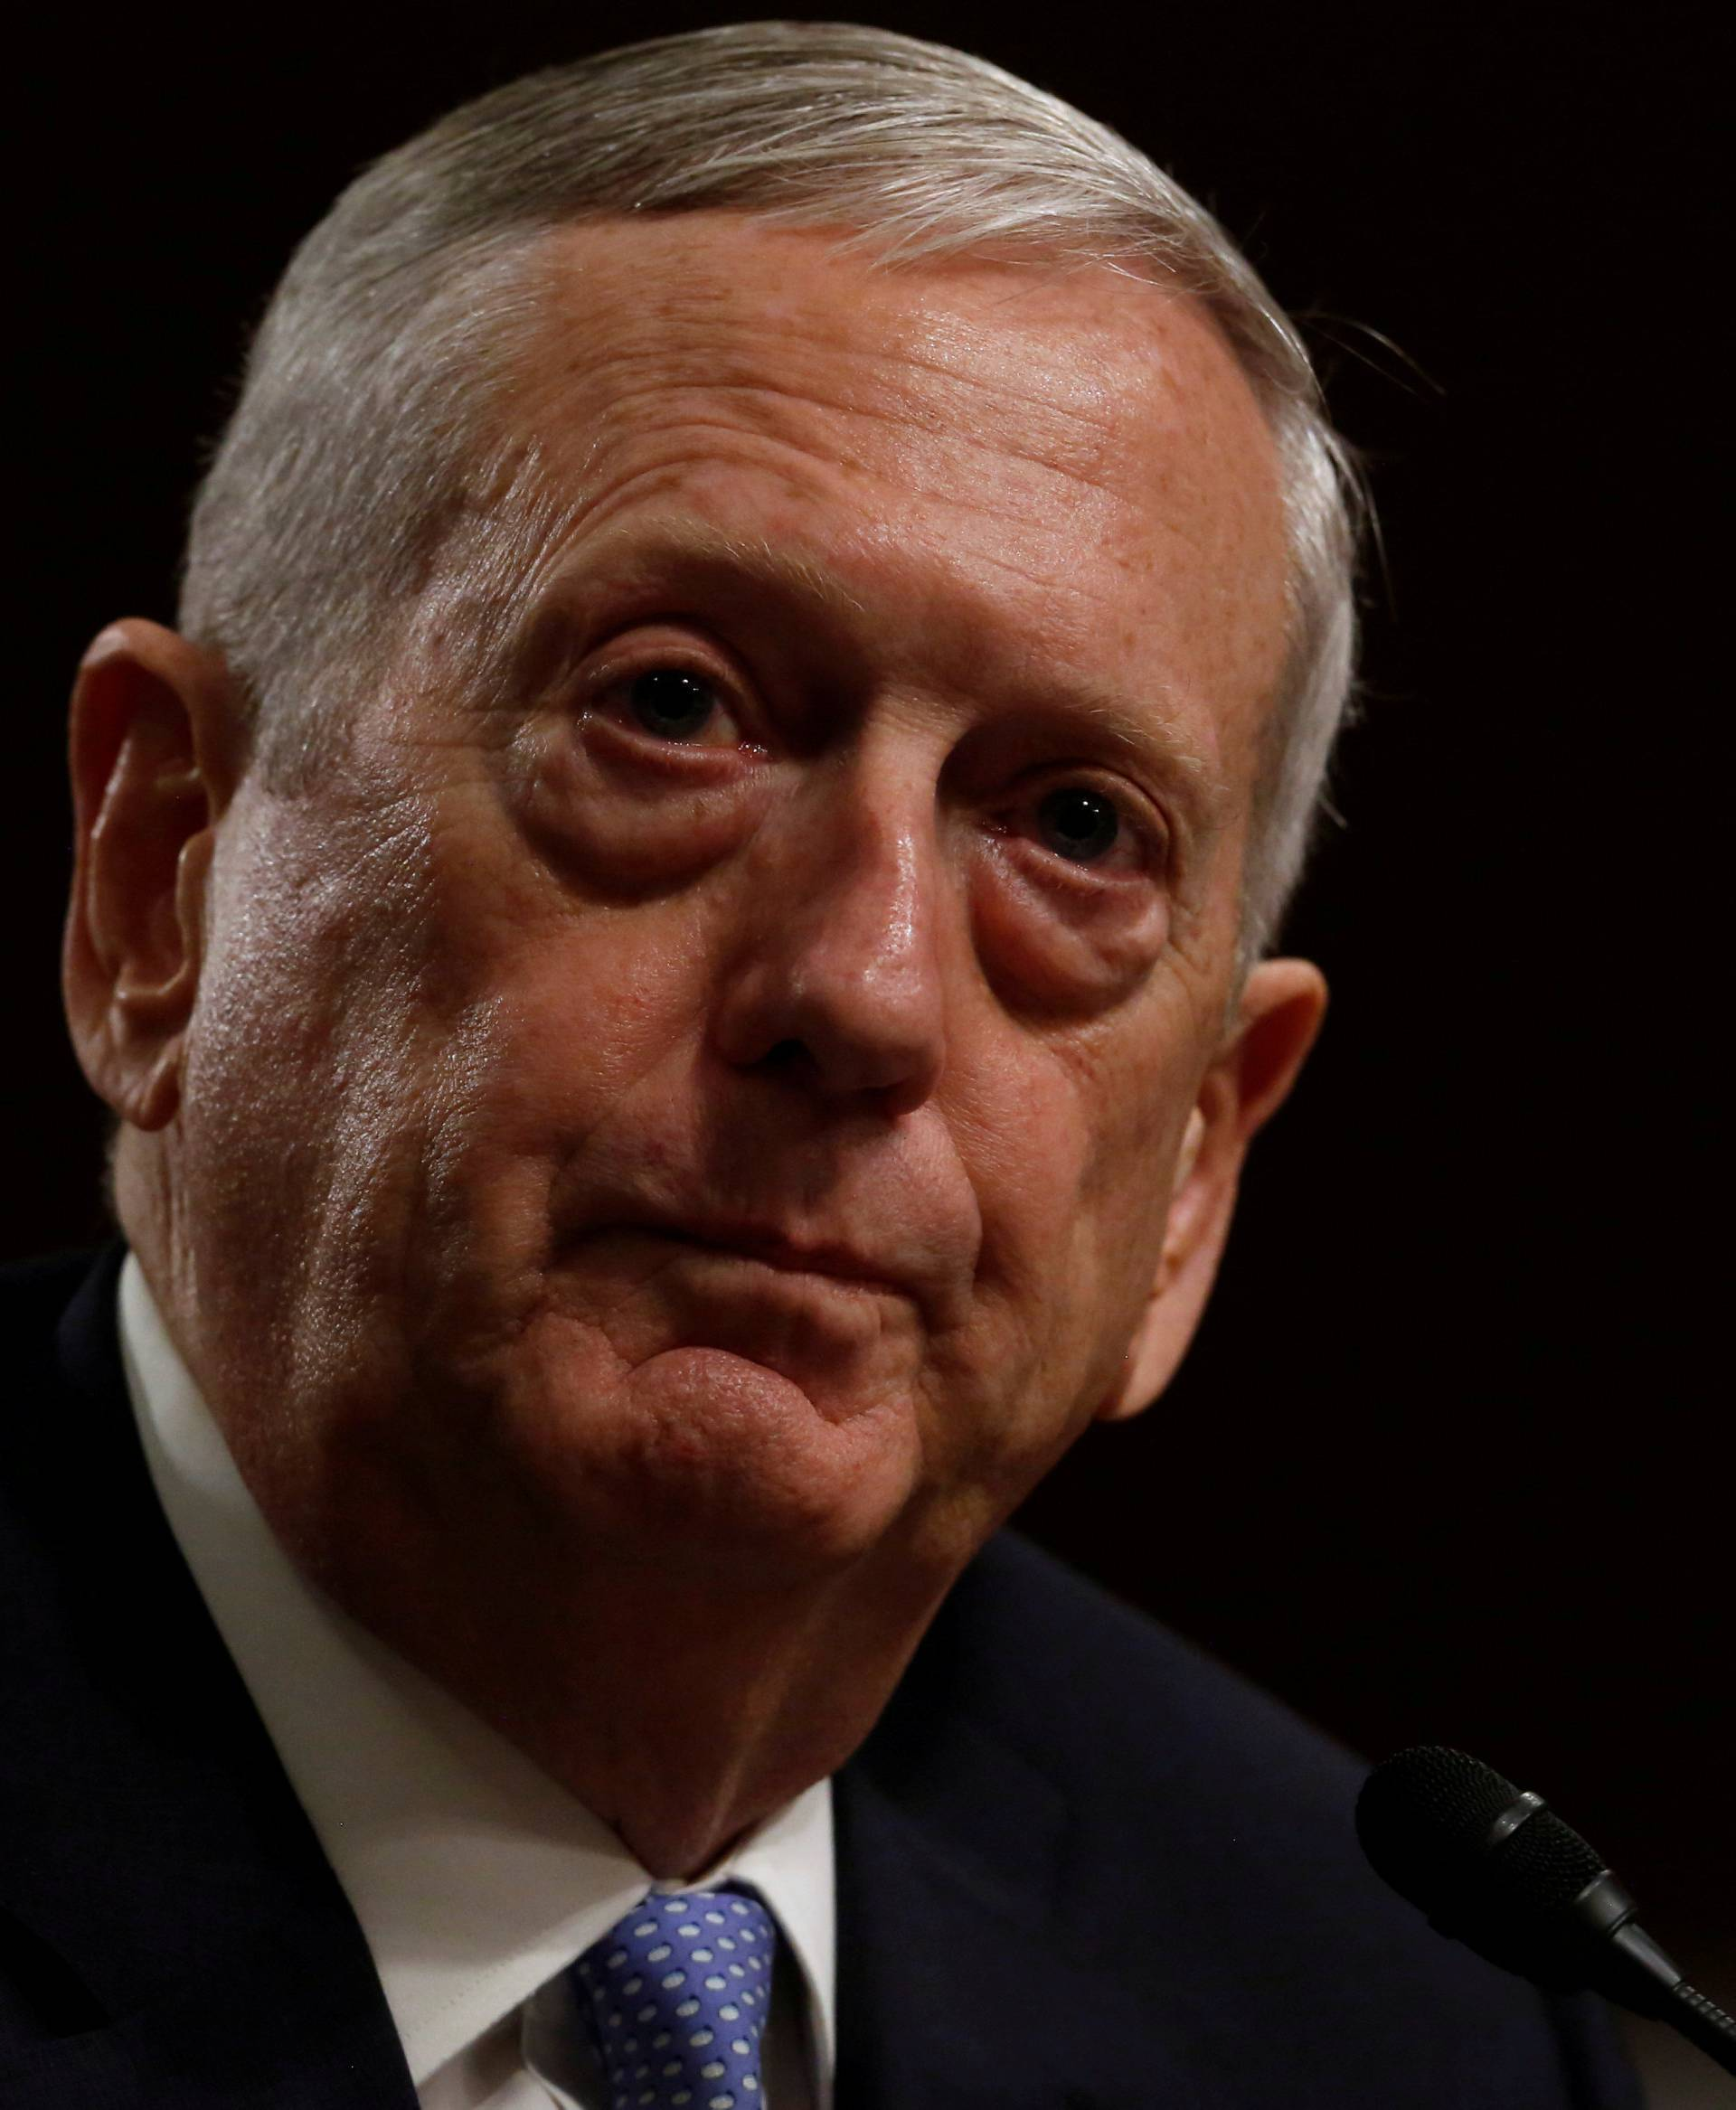 FILE PHOTO - Mattis testifies before a Senate Armed Services Committee hearing on his nomination to serve as defense secretary in Washington